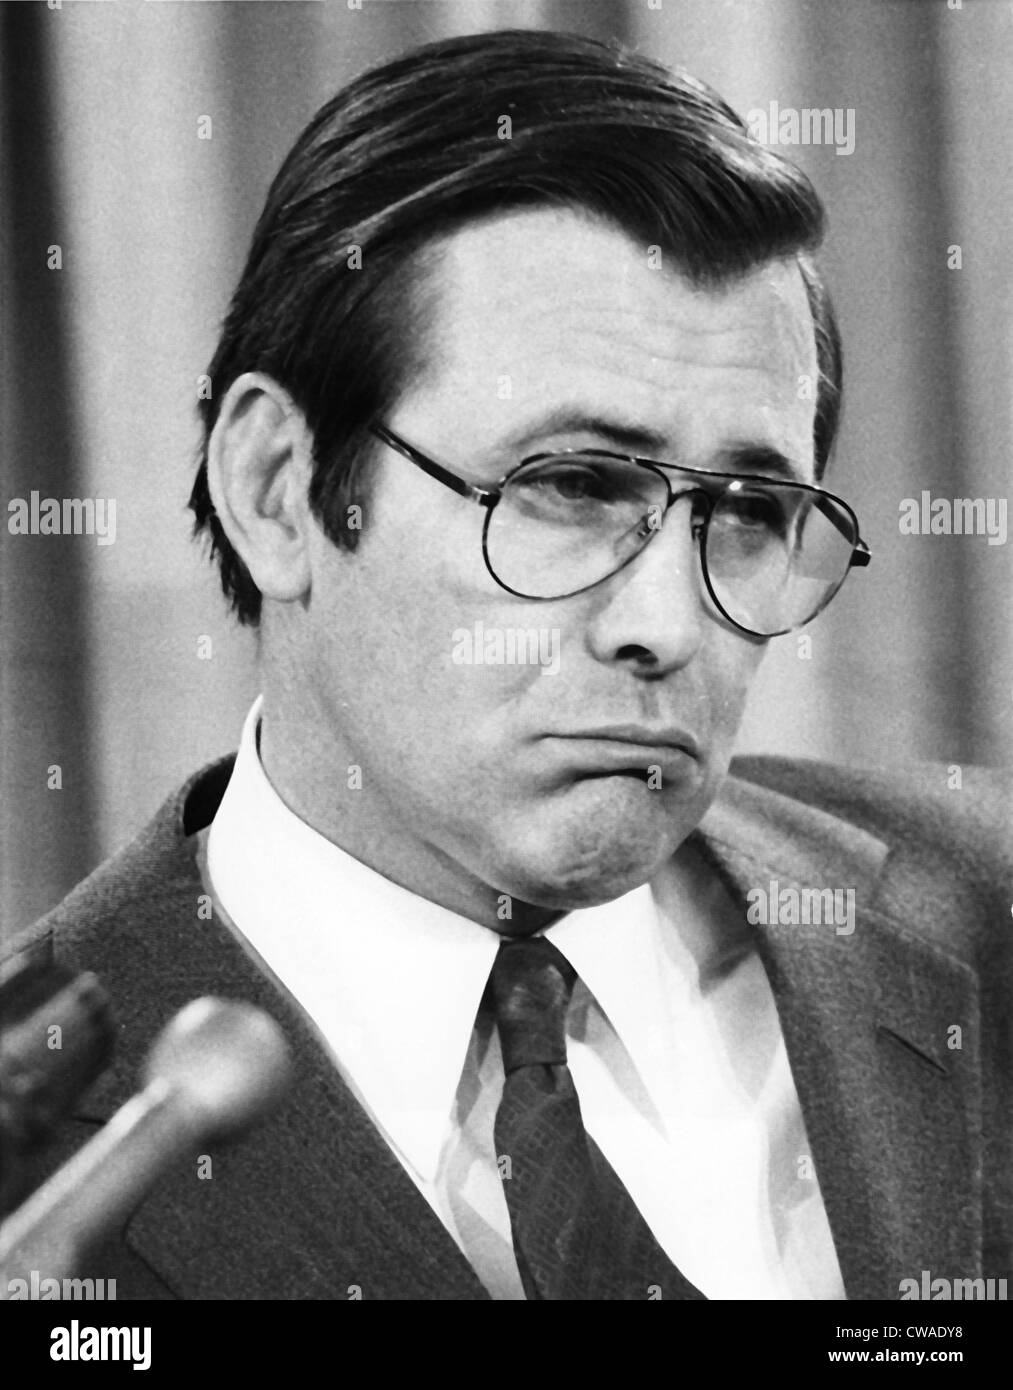 DONALD RUMSFELD, during press conference about the U.S. selling arms to Egypt, 1976. Courtesy: CSU Archives/Everett - Stock Image